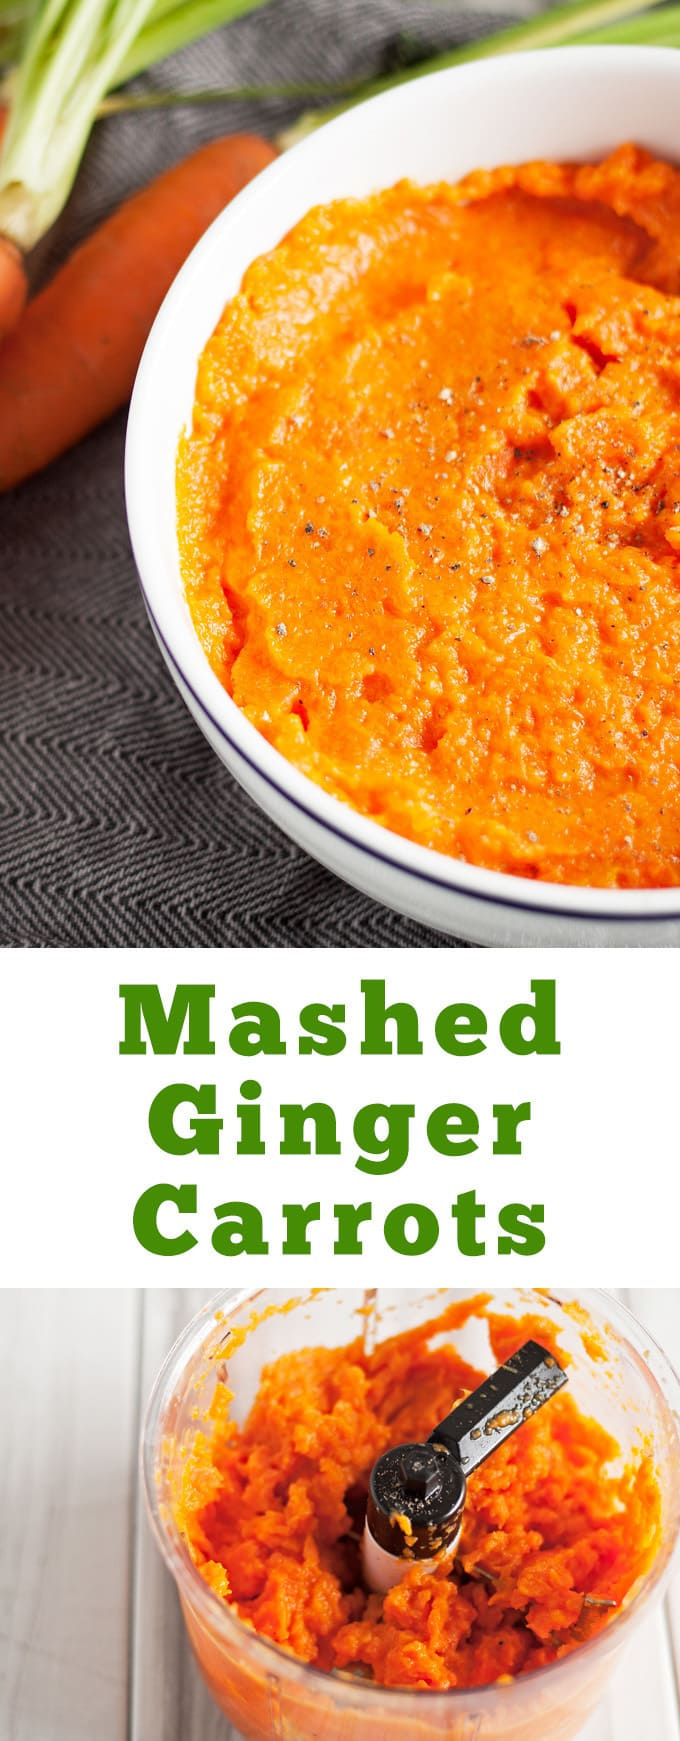 Mashed Ginger Carrots - the perfect fall side dish! This recipe makes two portions - double or triple it if you are cooking for a dinner party! | honeyandbirch.com